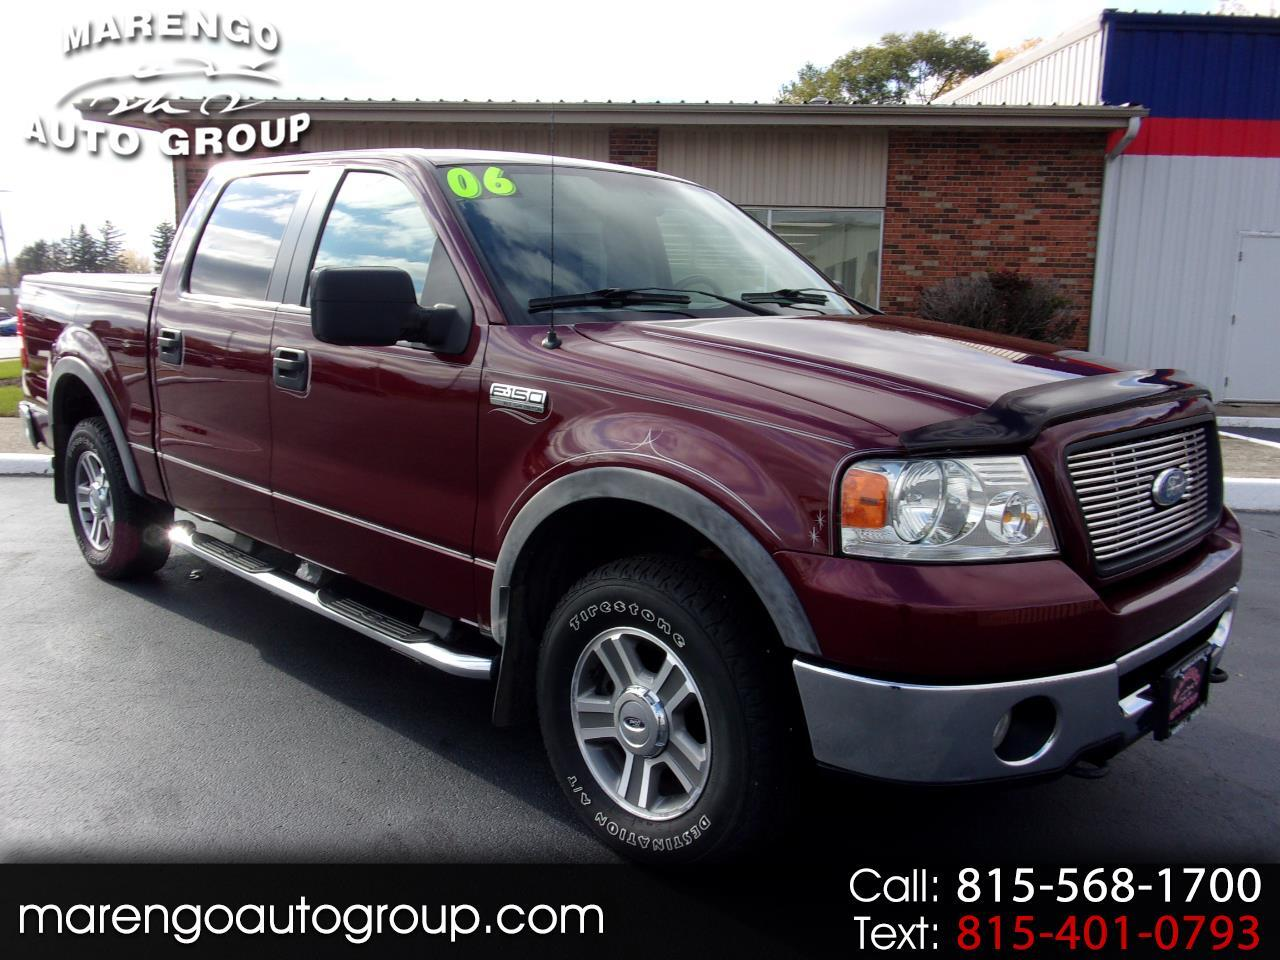 used 2006 Ford F-150 car, priced at $6,996